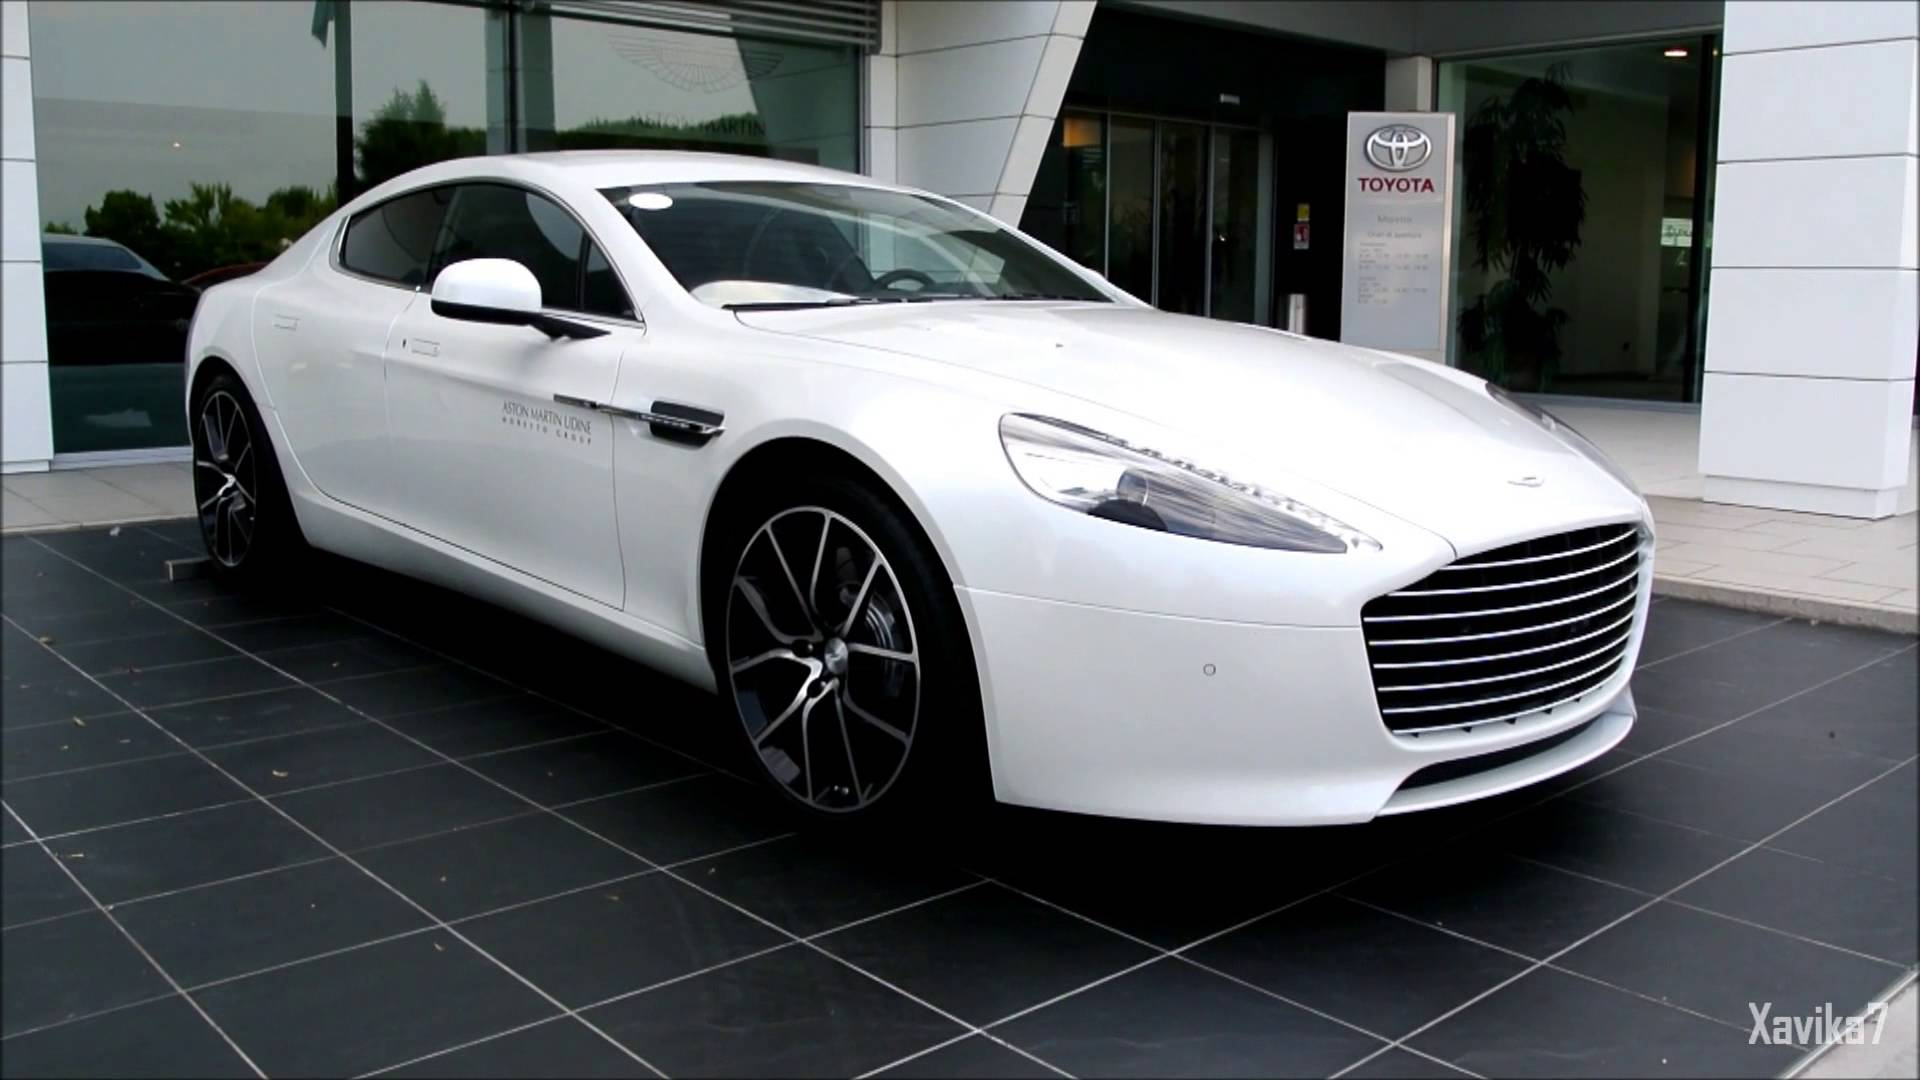 rapide s – Automobile Wallpapers in HD   Iphone,  Android,  Desktop 16 Wallpaper